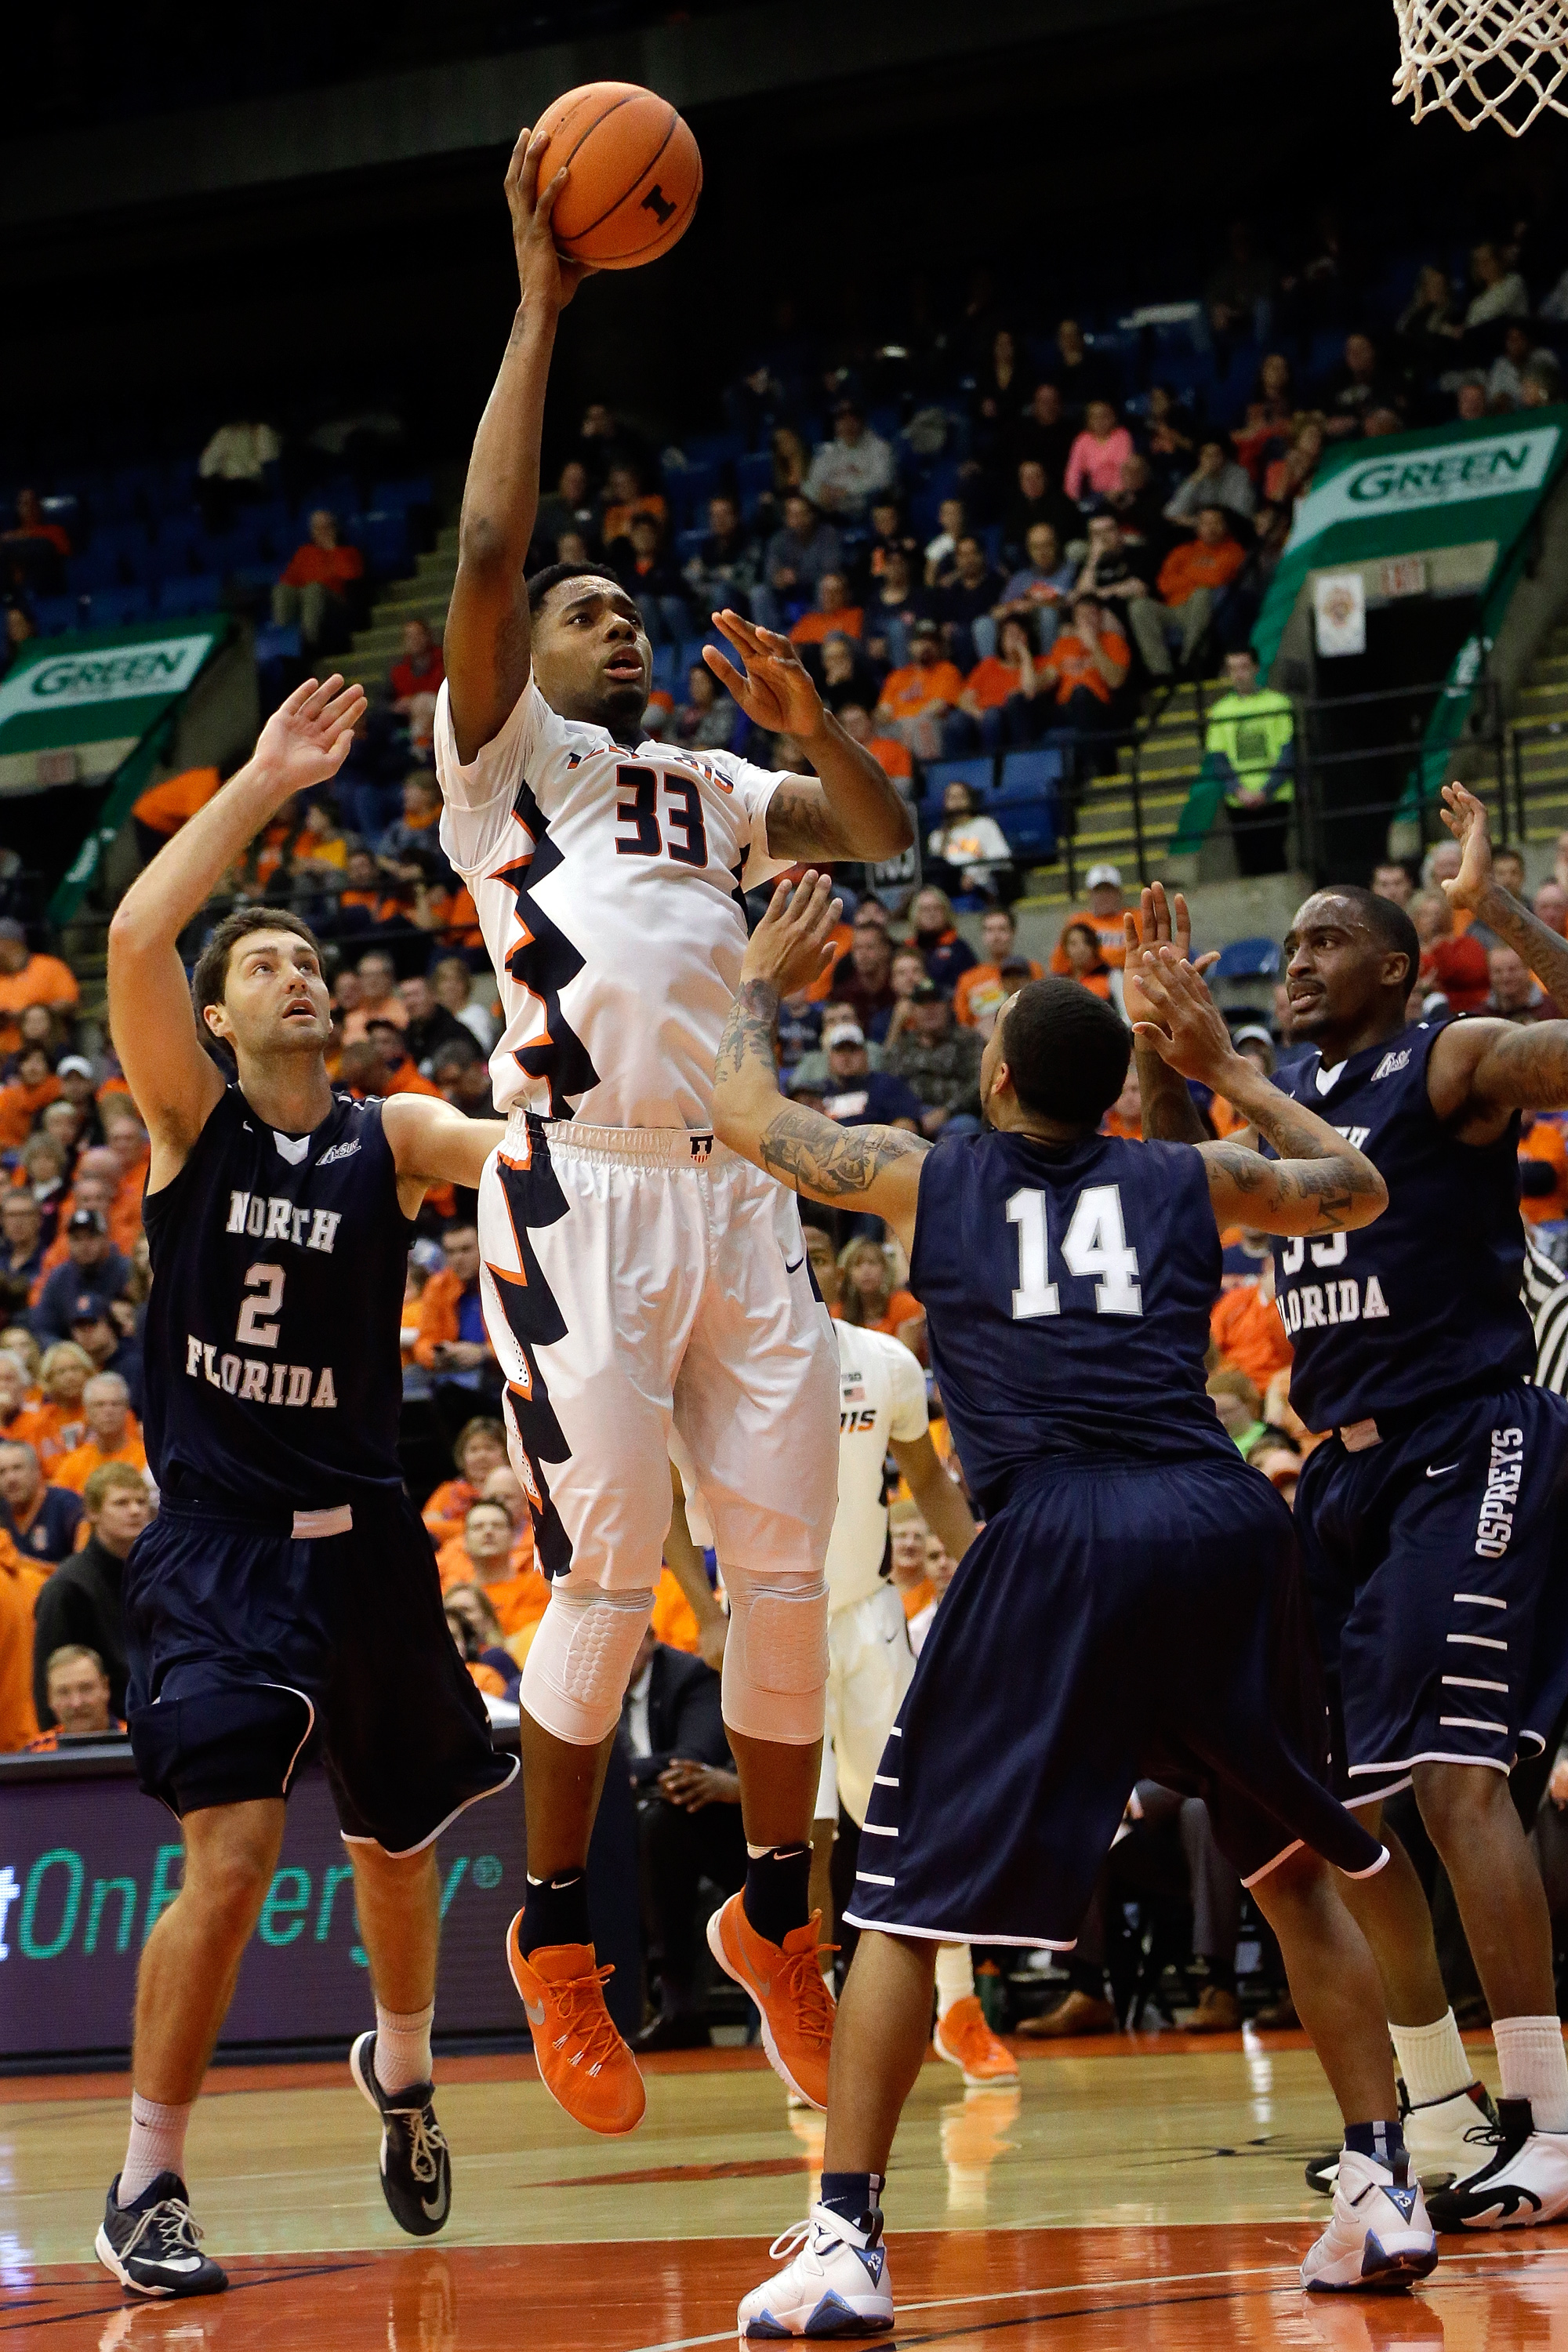 Illinois forward Mike Thorne Jr. (33) shoots over North Florida guard Dallas Moore (14) during the first half of an NCAA  college basketball game at the Prairie Capital Convention Center Friday, Nov. 13, 2015, in Springfield, Ill. (AP Photo/Seth Perlman)